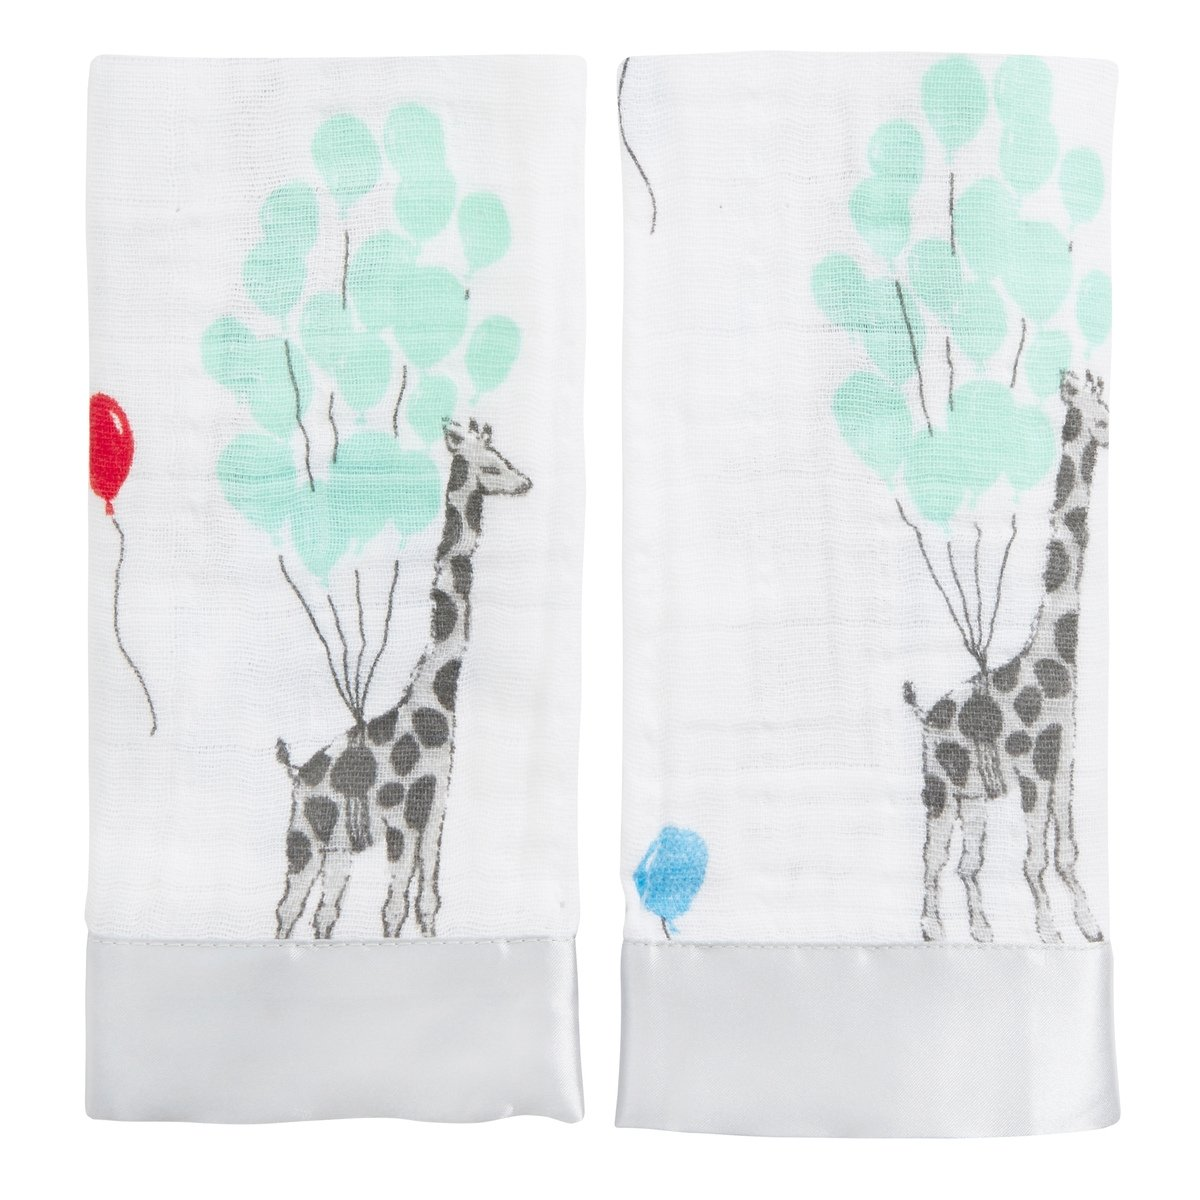 aden + anais issie security blanket, 100% cotton muslin with satin trim, 40cm X 40cm, 2 pack, petal blooms Aden and Anais 7521G